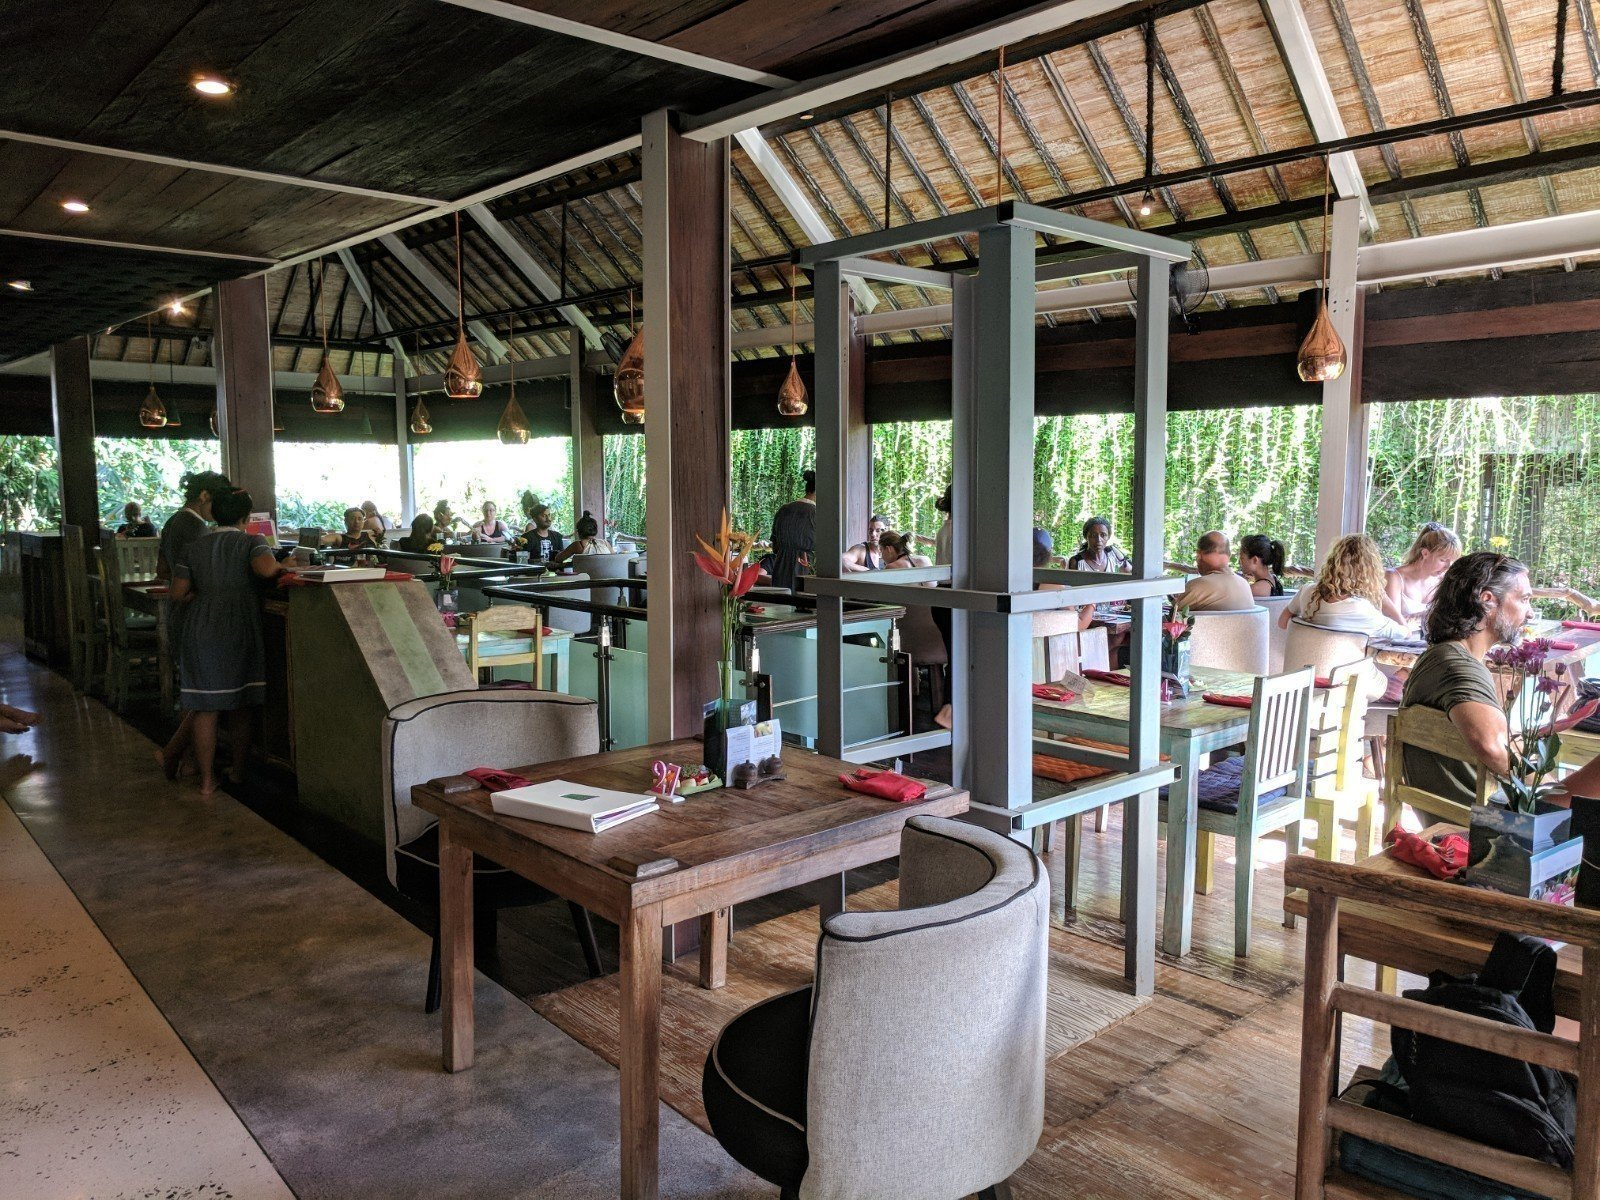 Clear Cafe: A Work-Friendly Place in Ubud